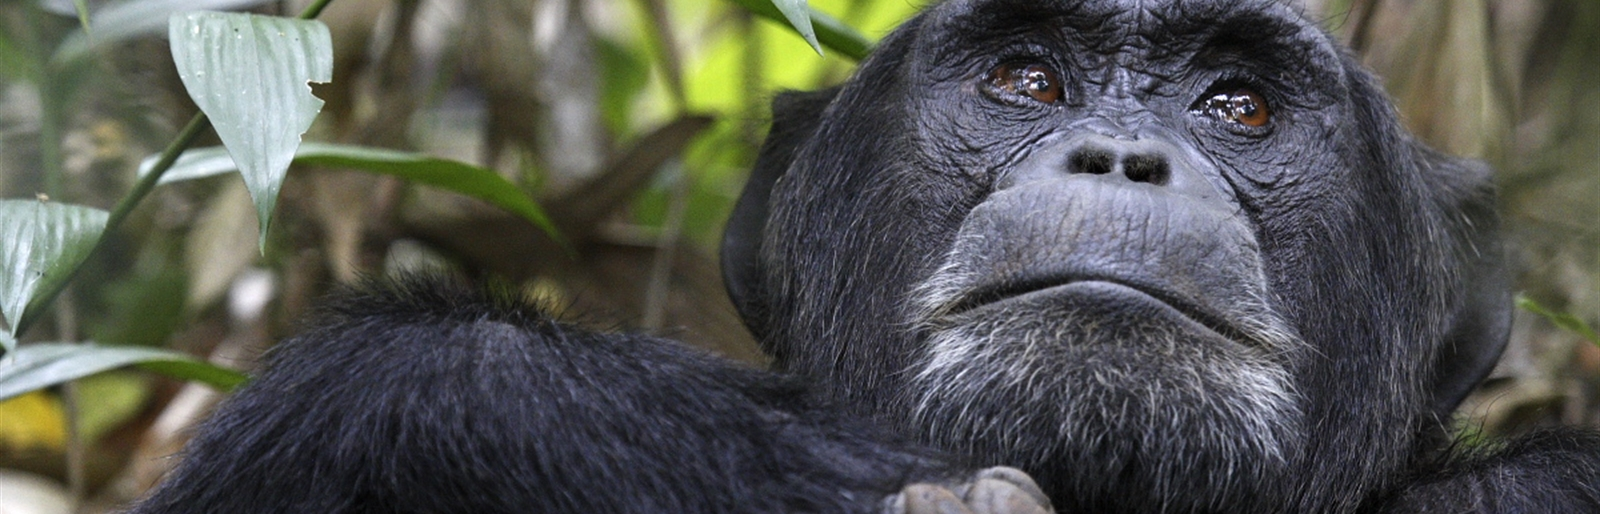 Our Closet living relatives 96% same DNA genes chimpanzees in Kibale Forest National Park - Uganda